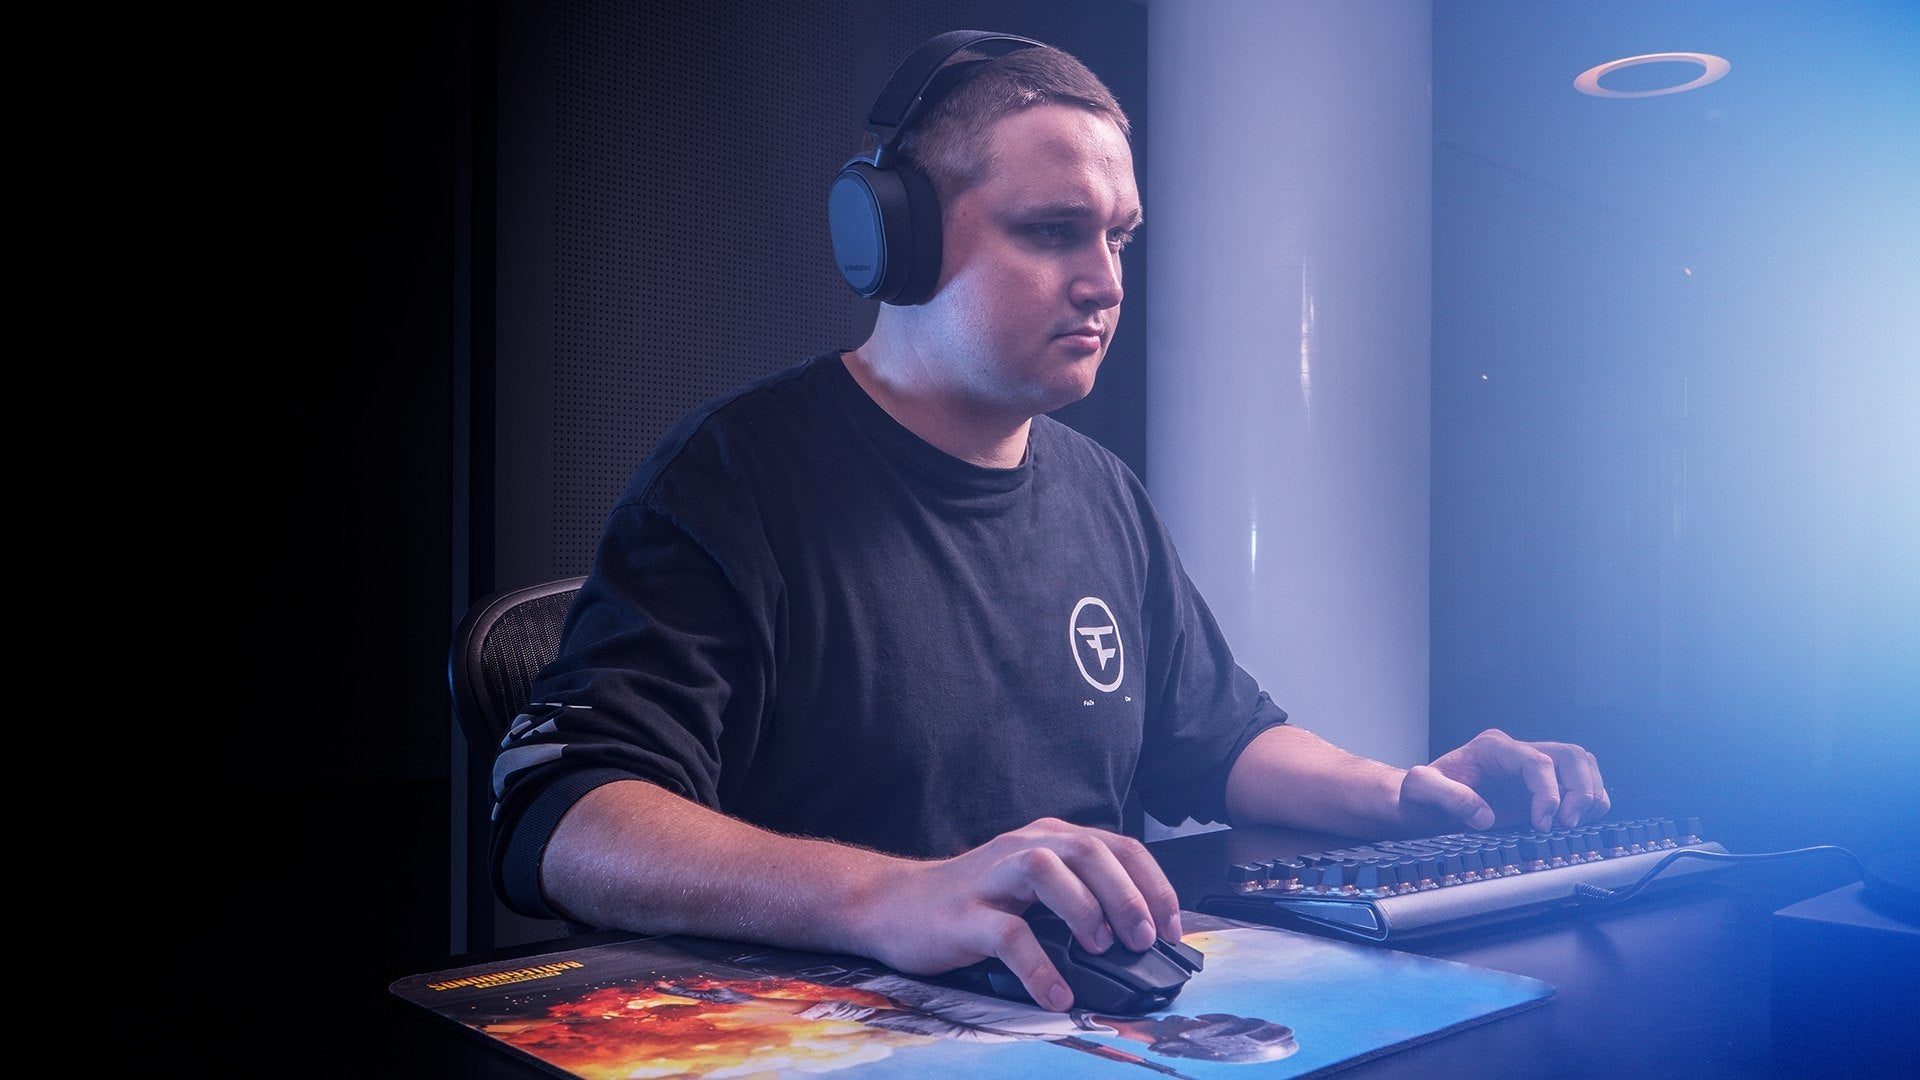 """Quantum Wireless - The all new state-of-the-art lag-free system delivers 1000Hz, 1ms latency, 24 hours of battery life, and tournament grade frequency optimization for unrivalled performance even during the most demanding gaming sessions.  -Anssi """"mxey"""" Pekkonen – FaZe Clan PUBG"""